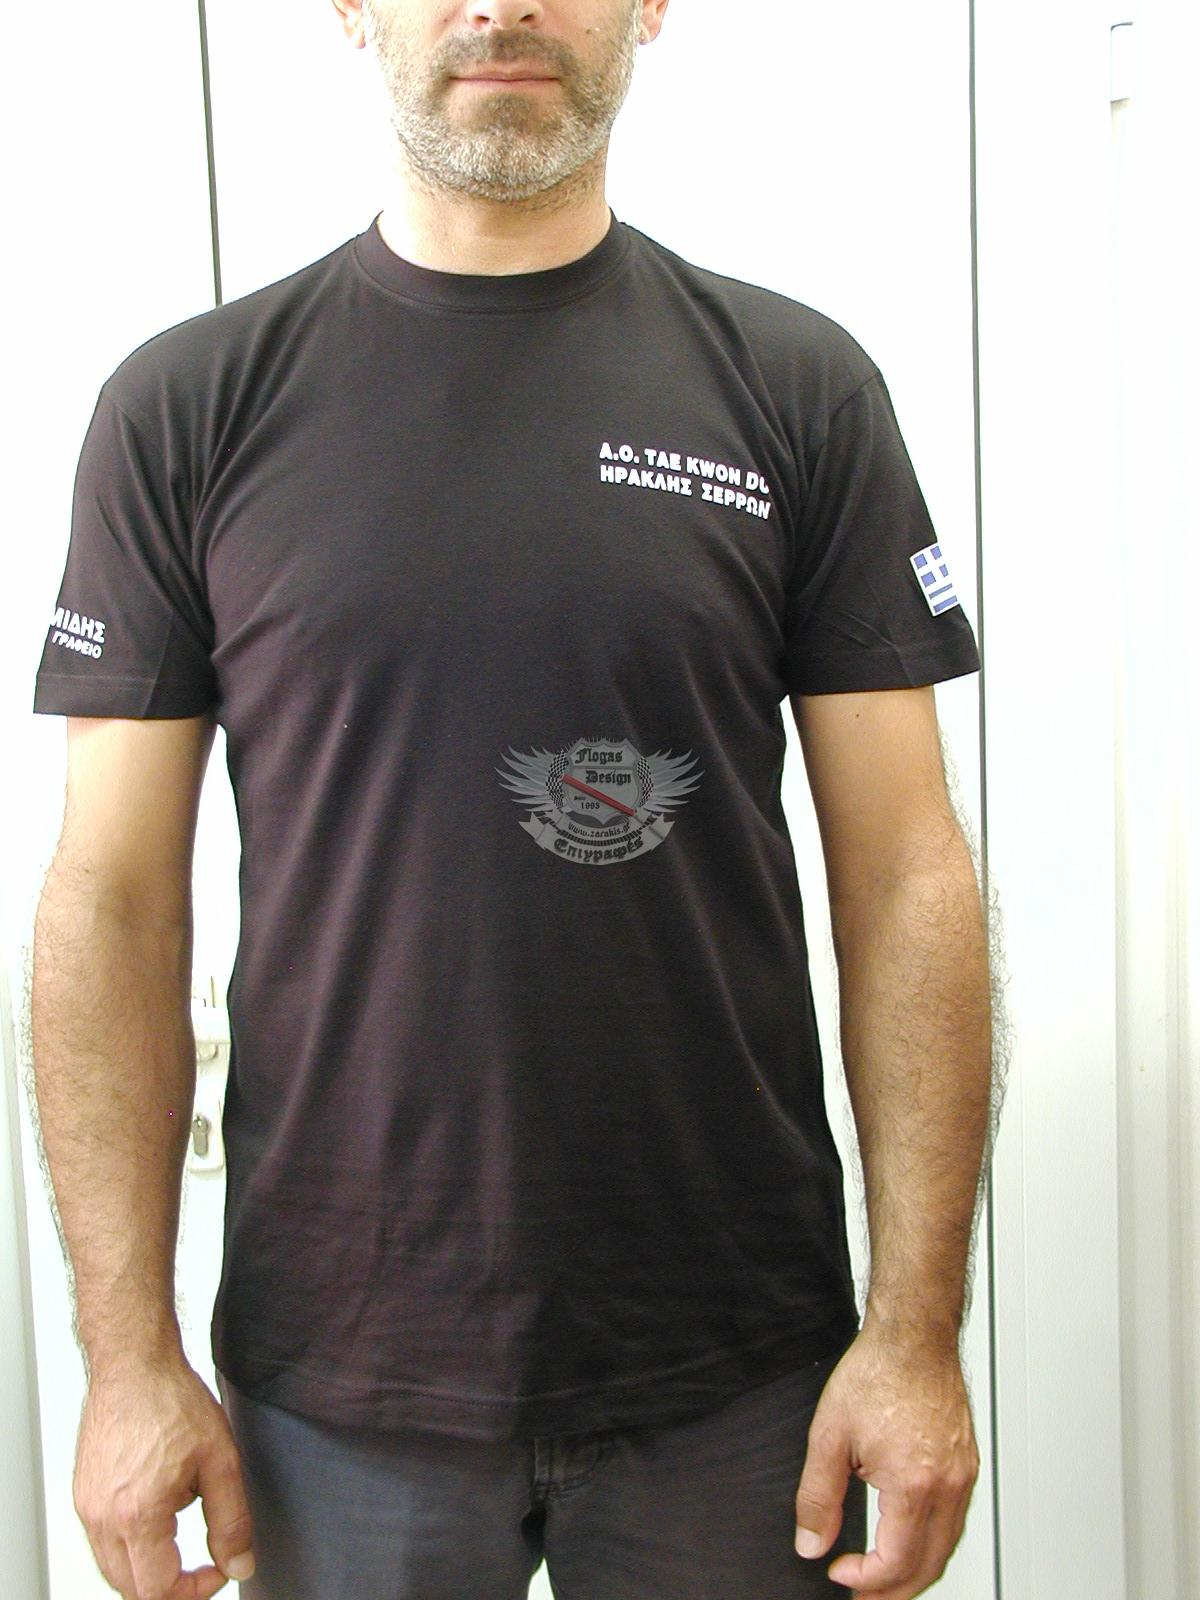 PRINTED CLOTHES,μπλουζάκια εκτυπωμένα, stampes